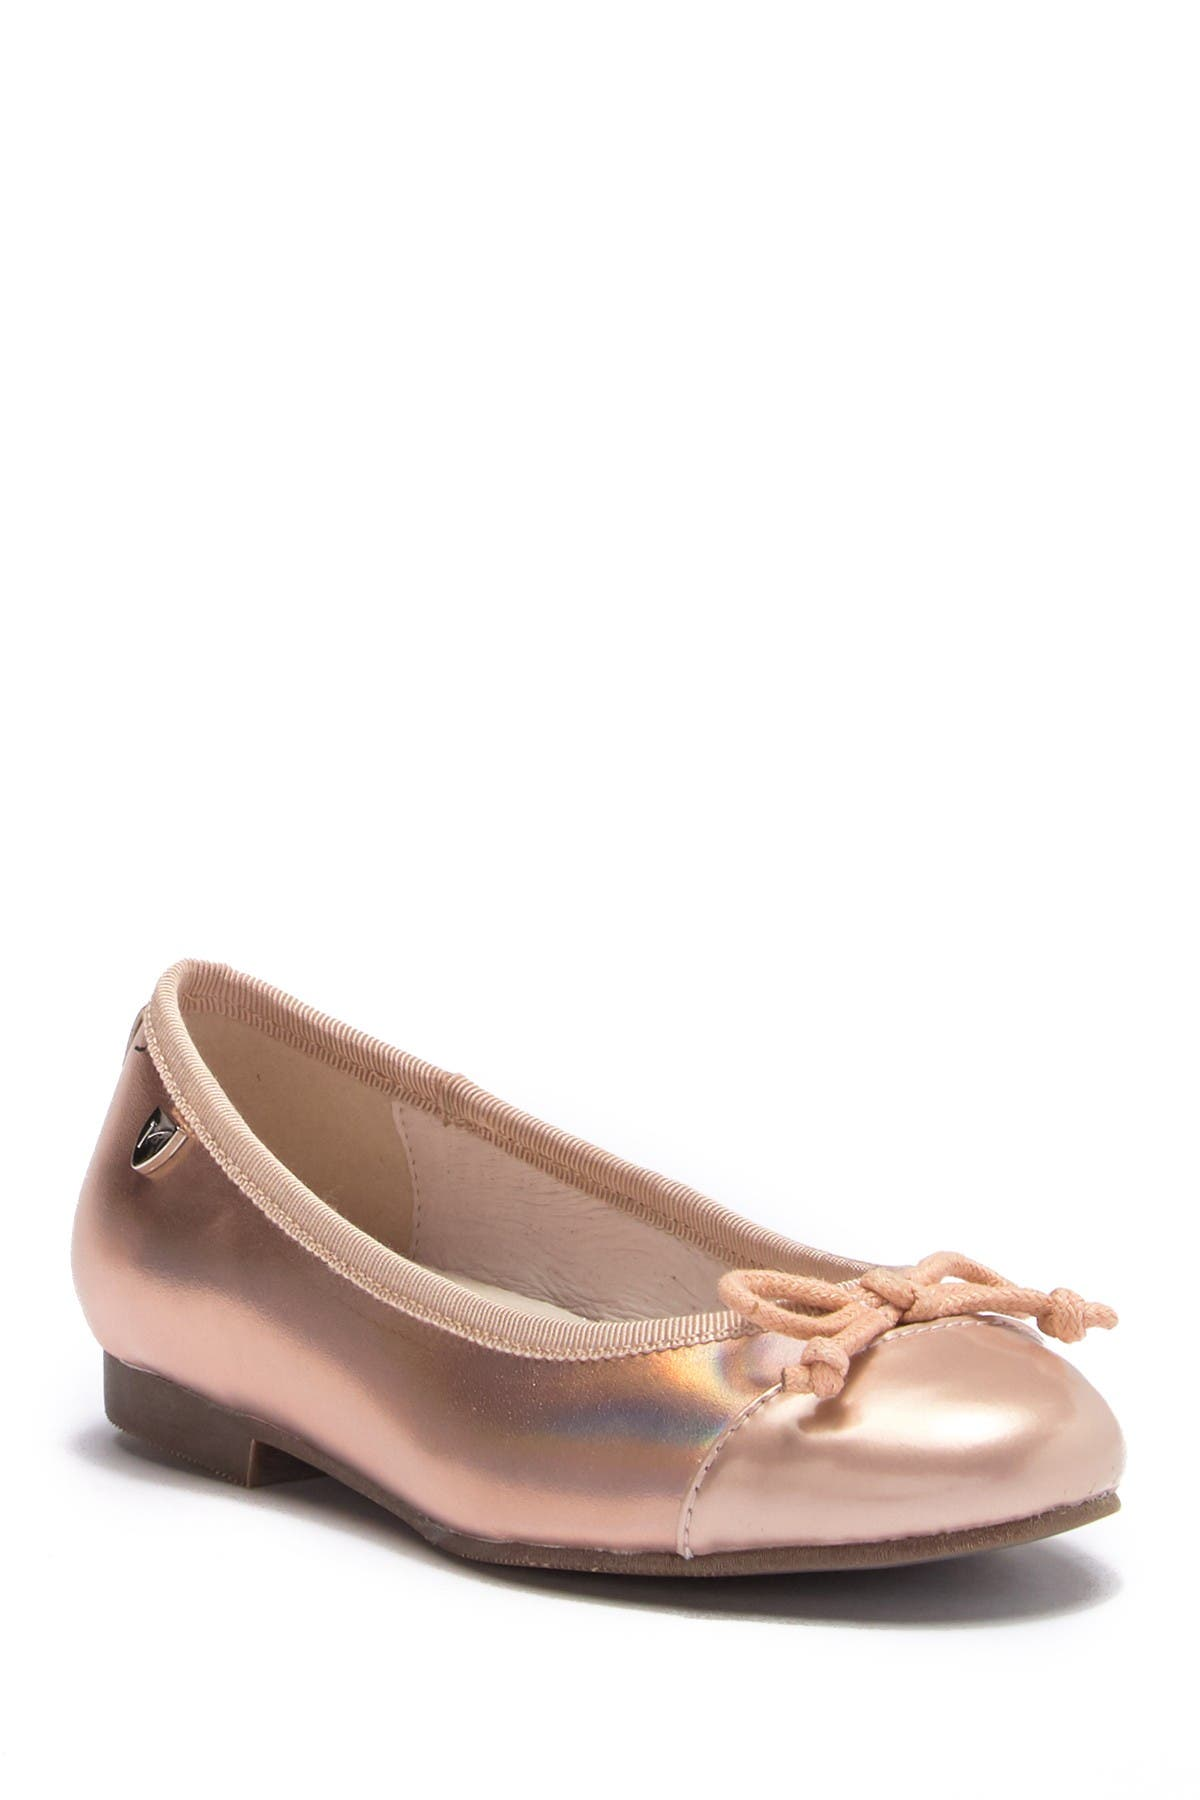 Image of Venettini Libby Patent Toe Flat